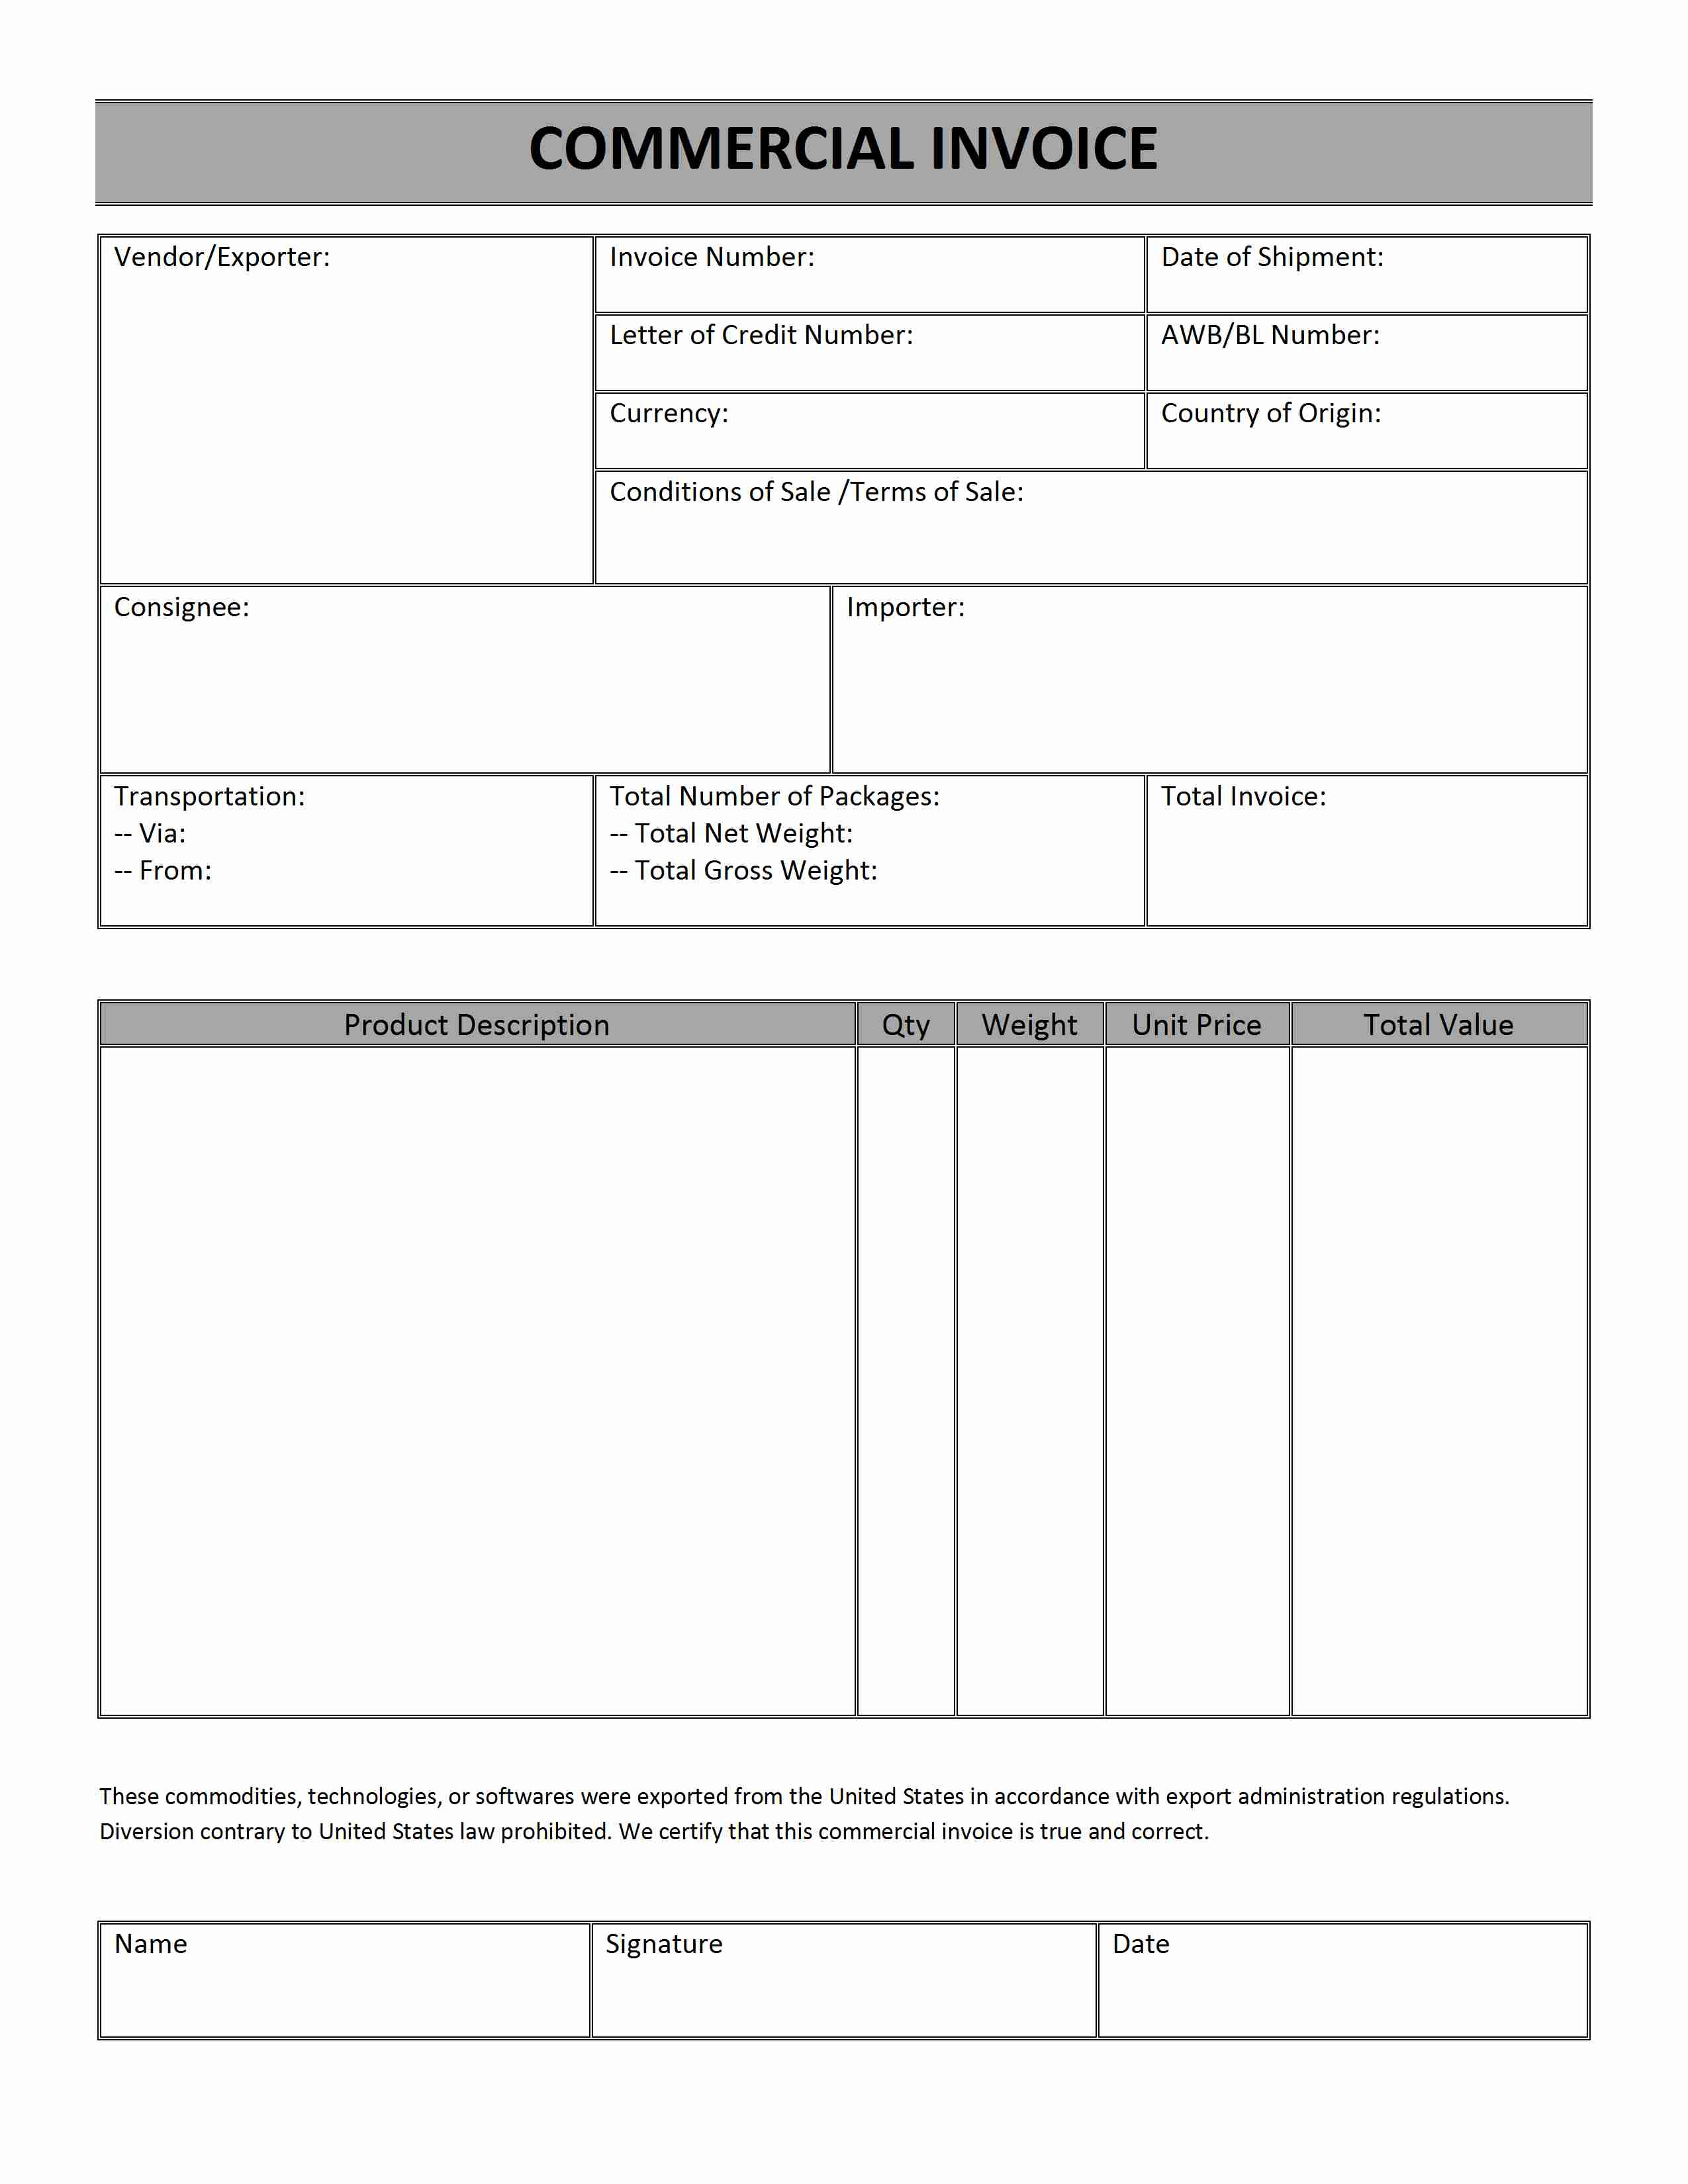 Carsforlessus  Gorgeous Printable Sales Invoice Simple Invoice Form Free Invoice  With Great Printable Receipt Free  Free Printable Raffle Tickets  Receipt   Printable With Agreeable Commercial Invoice Template Uk Also Perfoma Invoice In Addition Work Order Invoices And Invoice Timesheet As Well As Invoicing As A Sole Trader Additionally Sage Invoices From Happytomco With Carsforlessus  Great Printable Sales Invoice Simple Invoice Form Free Invoice  With Agreeable Printable Receipt Free  Free Printable Raffle Tickets  Receipt   Printable And Gorgeous Commercial Invoice Template Uk Also Perfoma Invoice In Addition Work Order Invoices From Happytomco